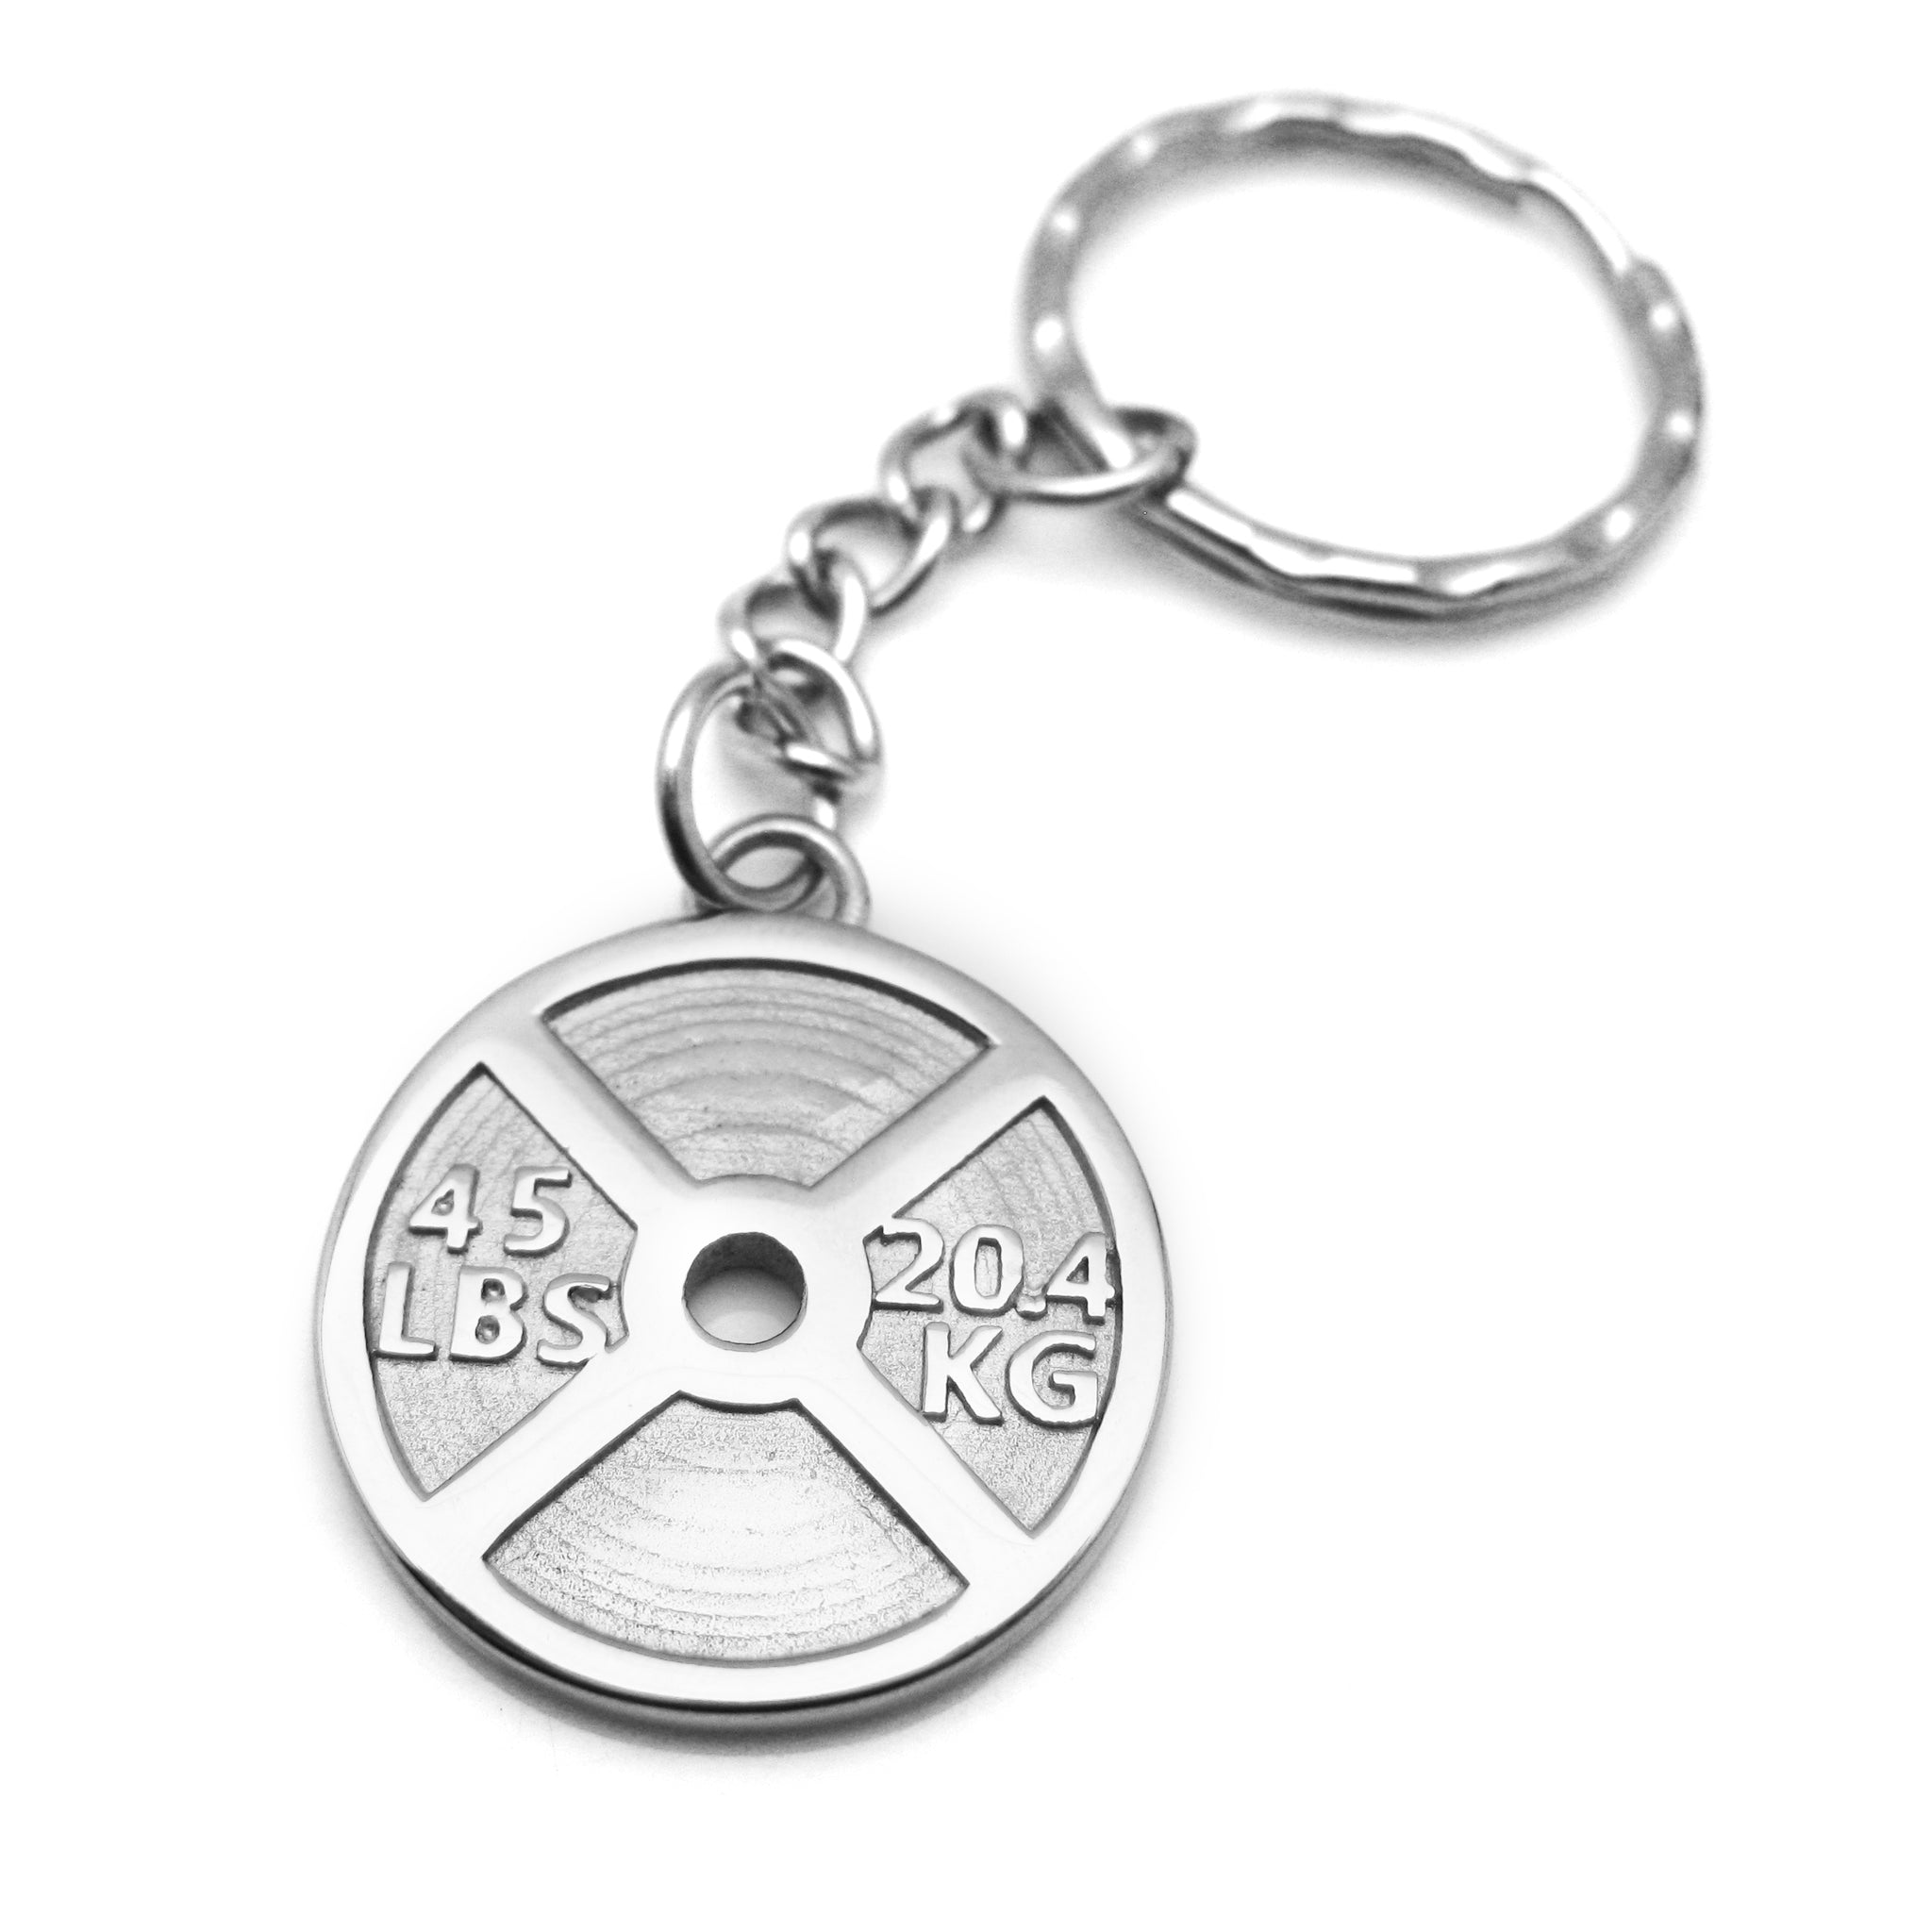 45lb Weight Plate Keychain (Stainless Steel)